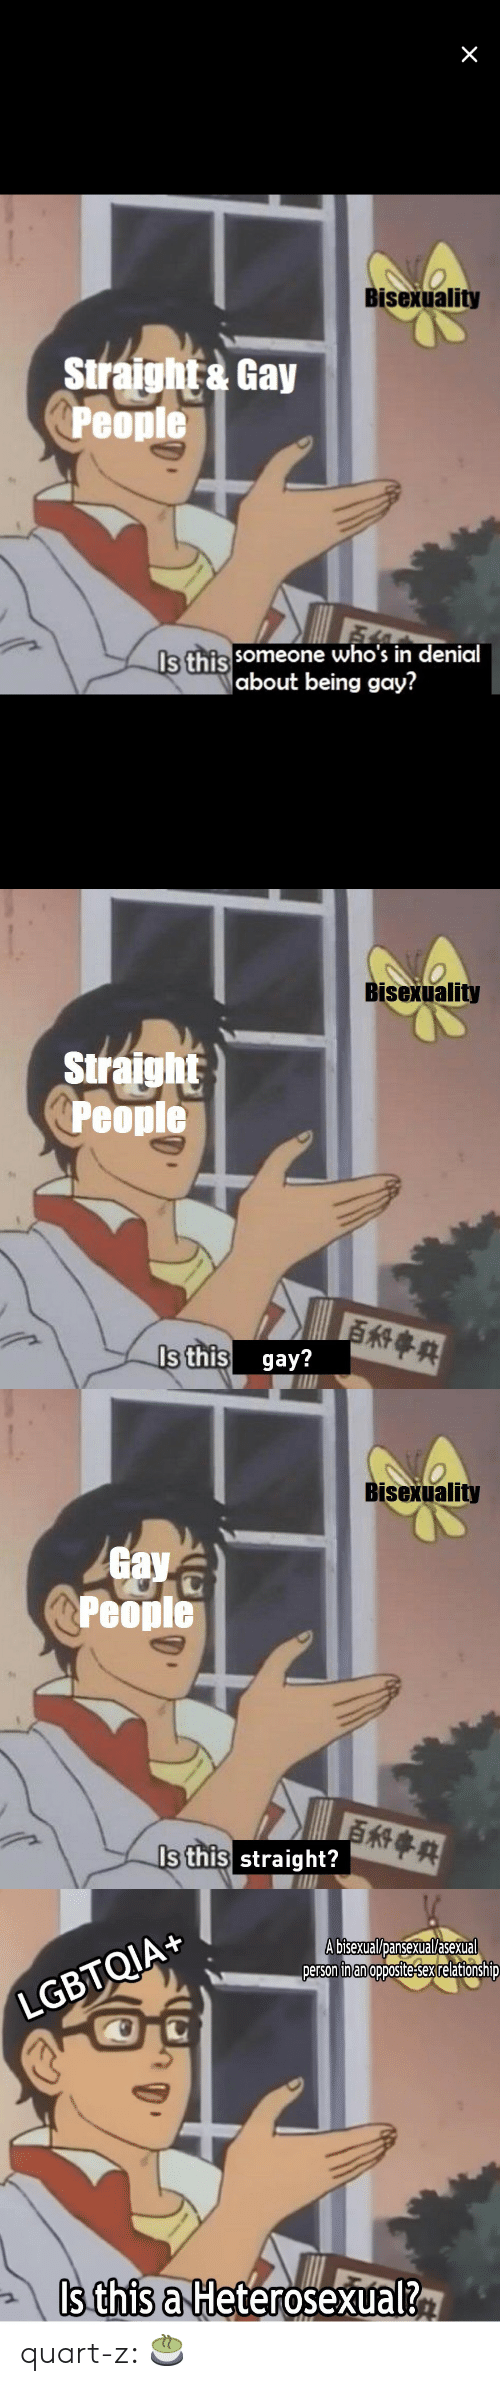 Sex, Tumblr, and Asexual: Bisexuality  Siraht Gay  Peopie  Is this  someone who's in denial  about being gay?   Bisexuality  Siraight  People  s this gay?   Bisexuality  av  People  Is this straight?   LGBTQIA+  A bisexual/Dansexual/asexual  person inan opposite-sex relationshiD  Is this a Heterosexual? quart-z:  🍵